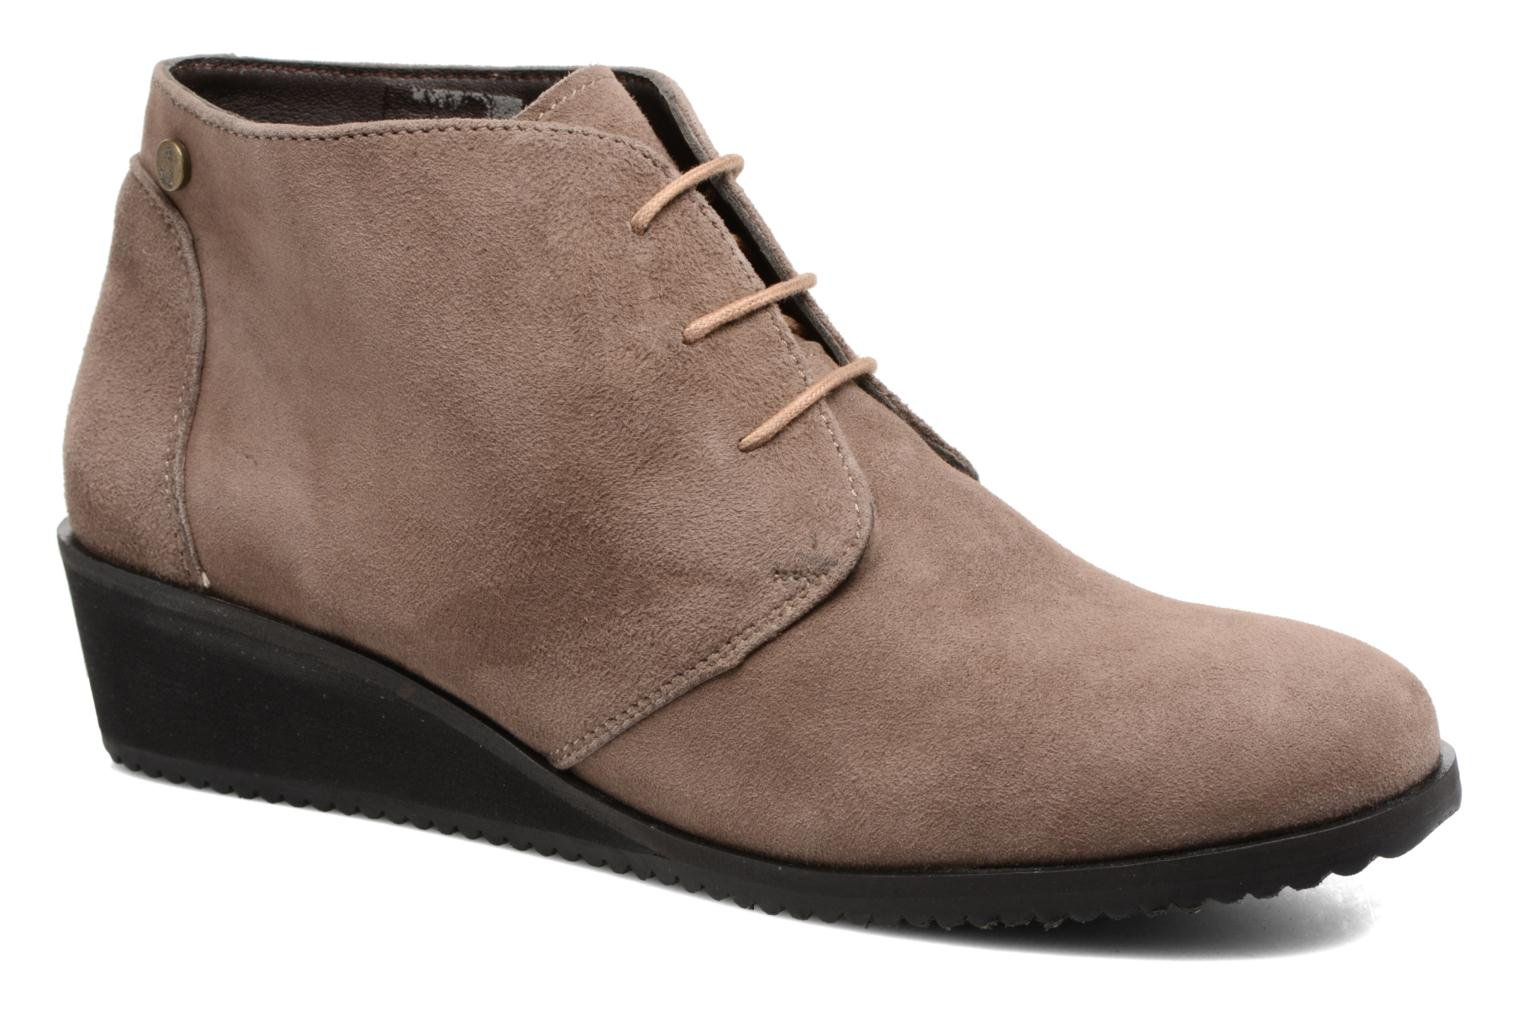 Bottines et boots Hush Puppies Colali Marron vue détail/paire